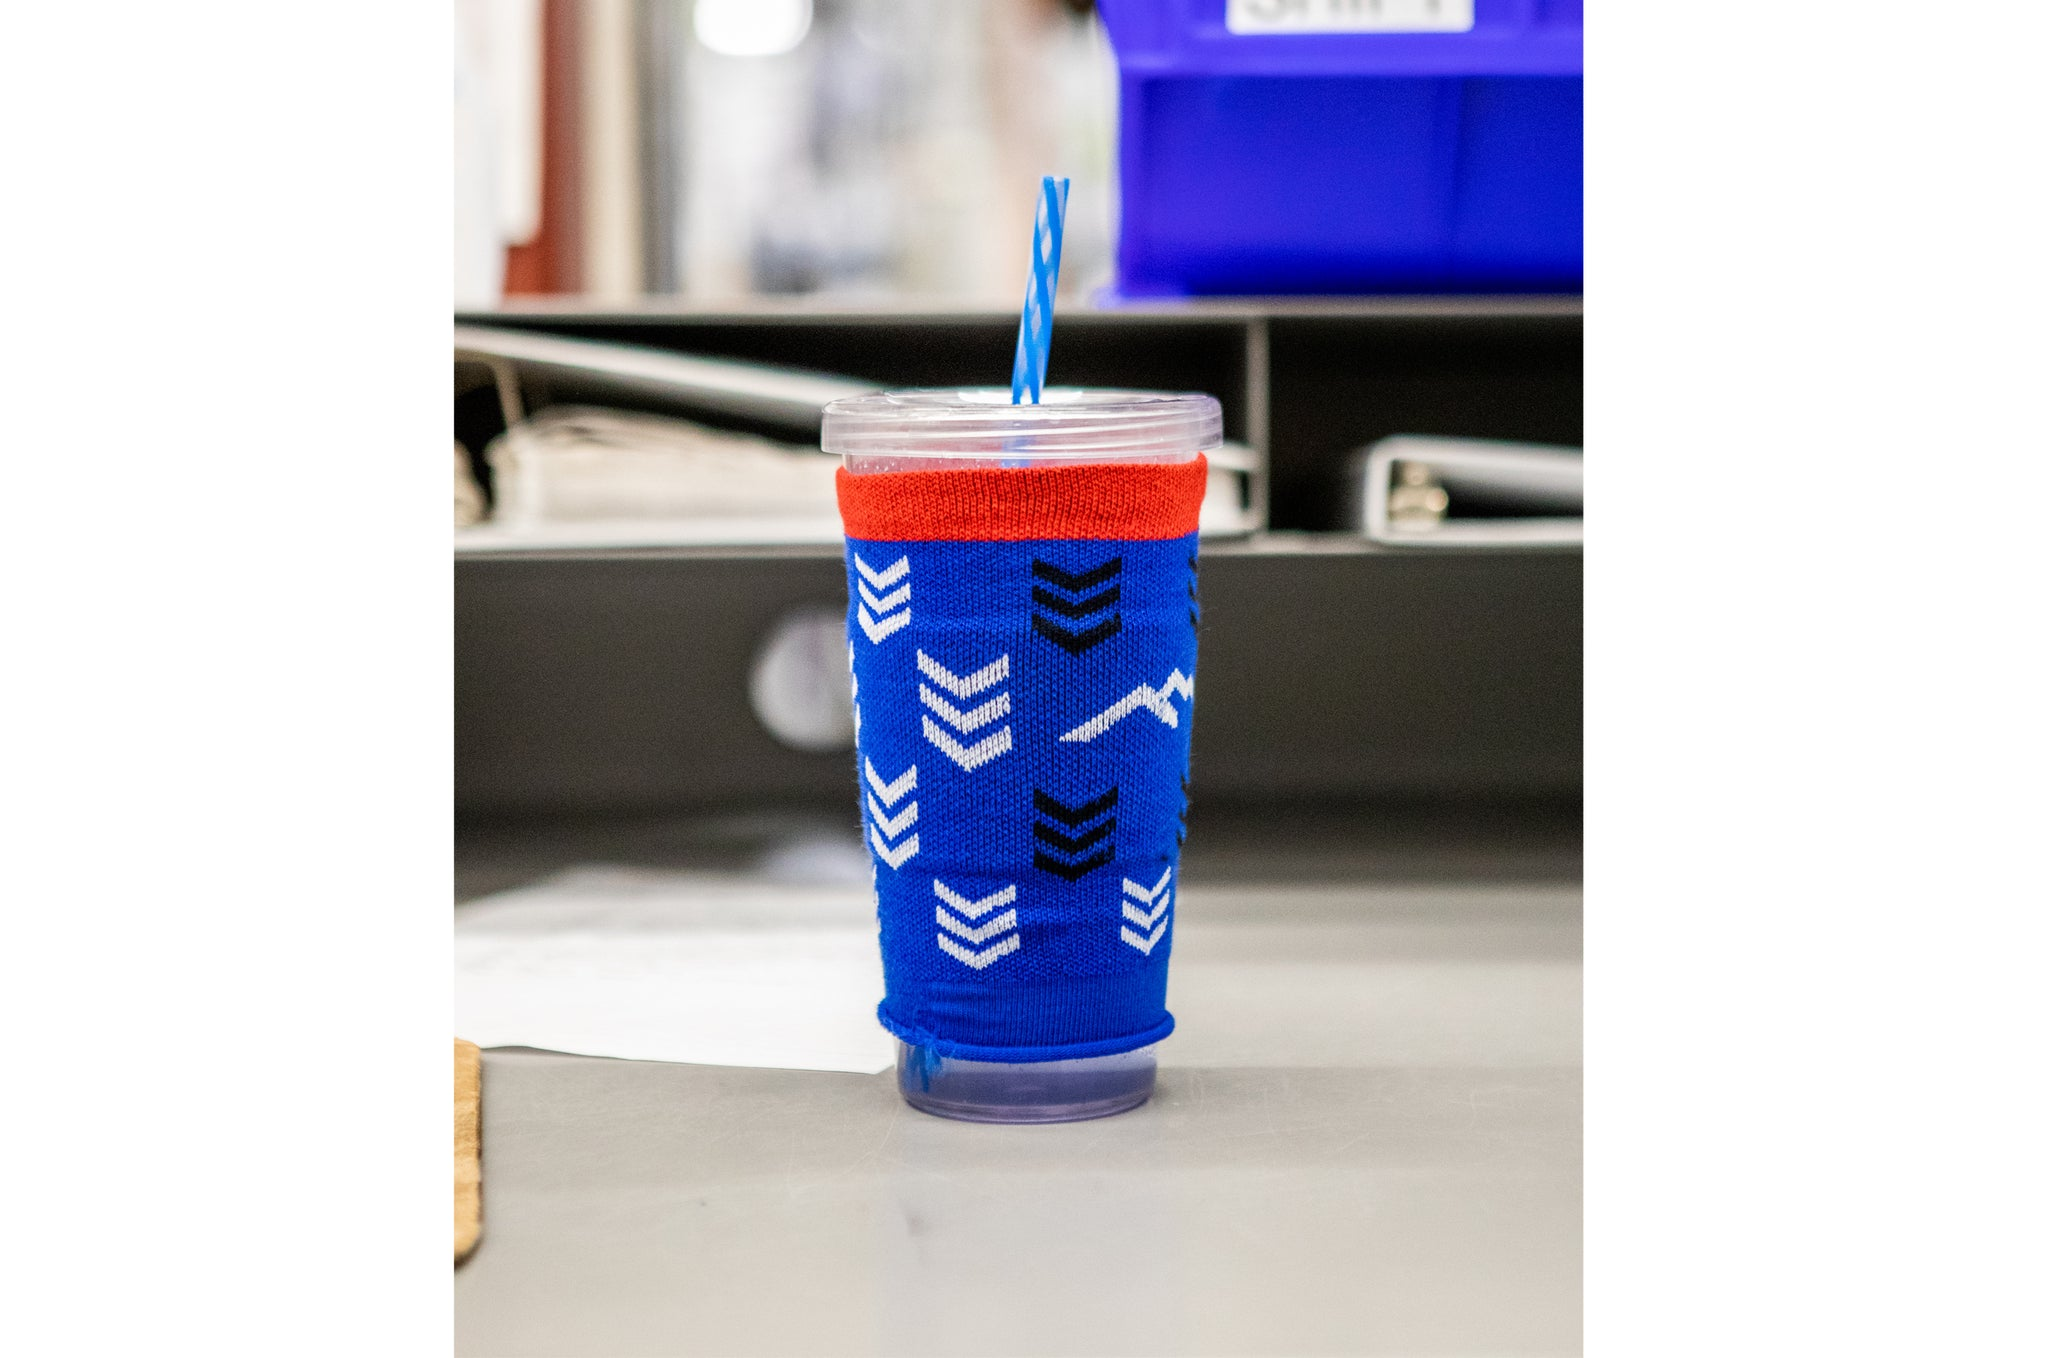 Picture of a drinking cup with a sock being used as a coozie.